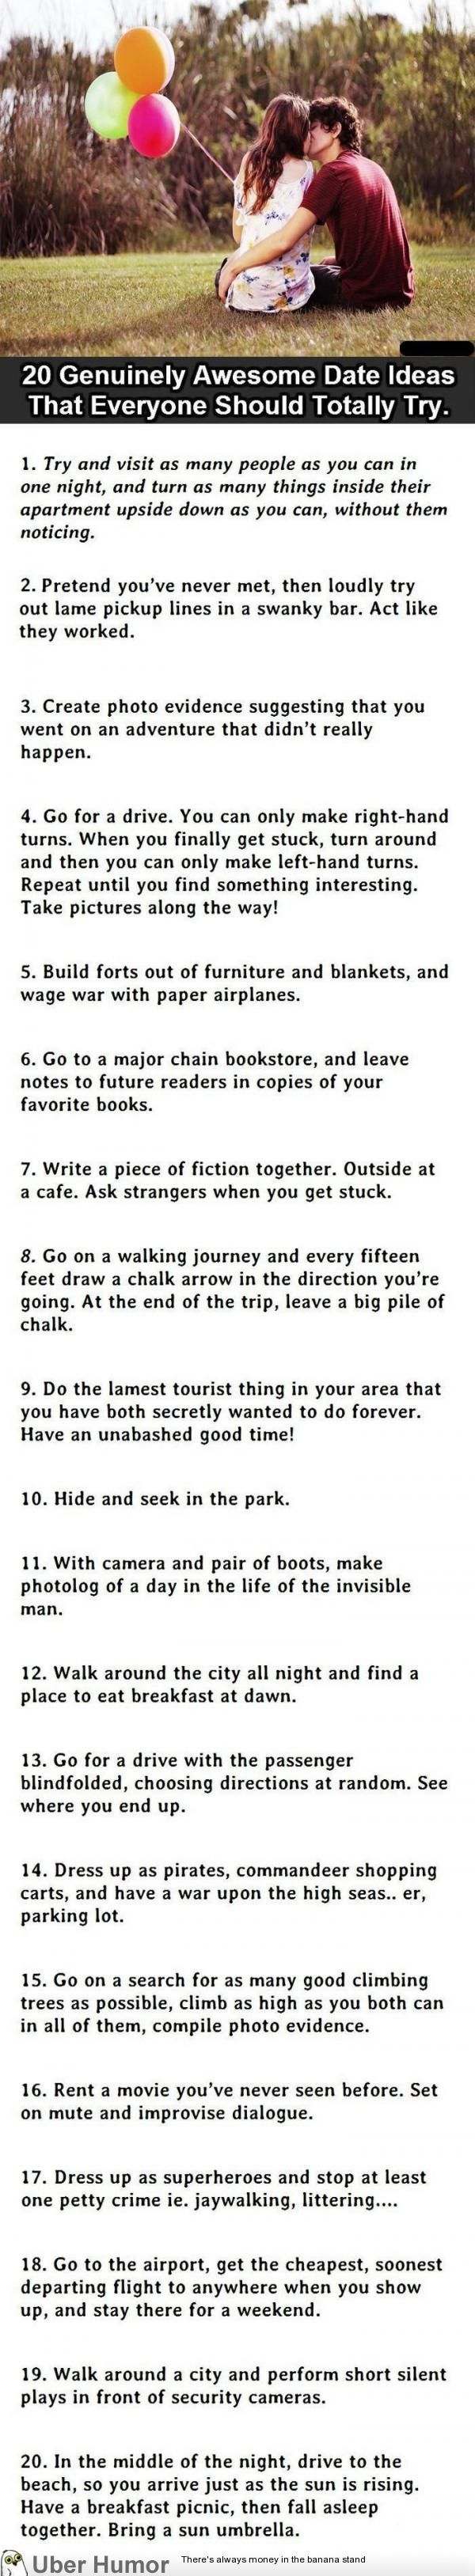 20 Genuinely Awesome Date Ideas that Everyone Should Totally Try